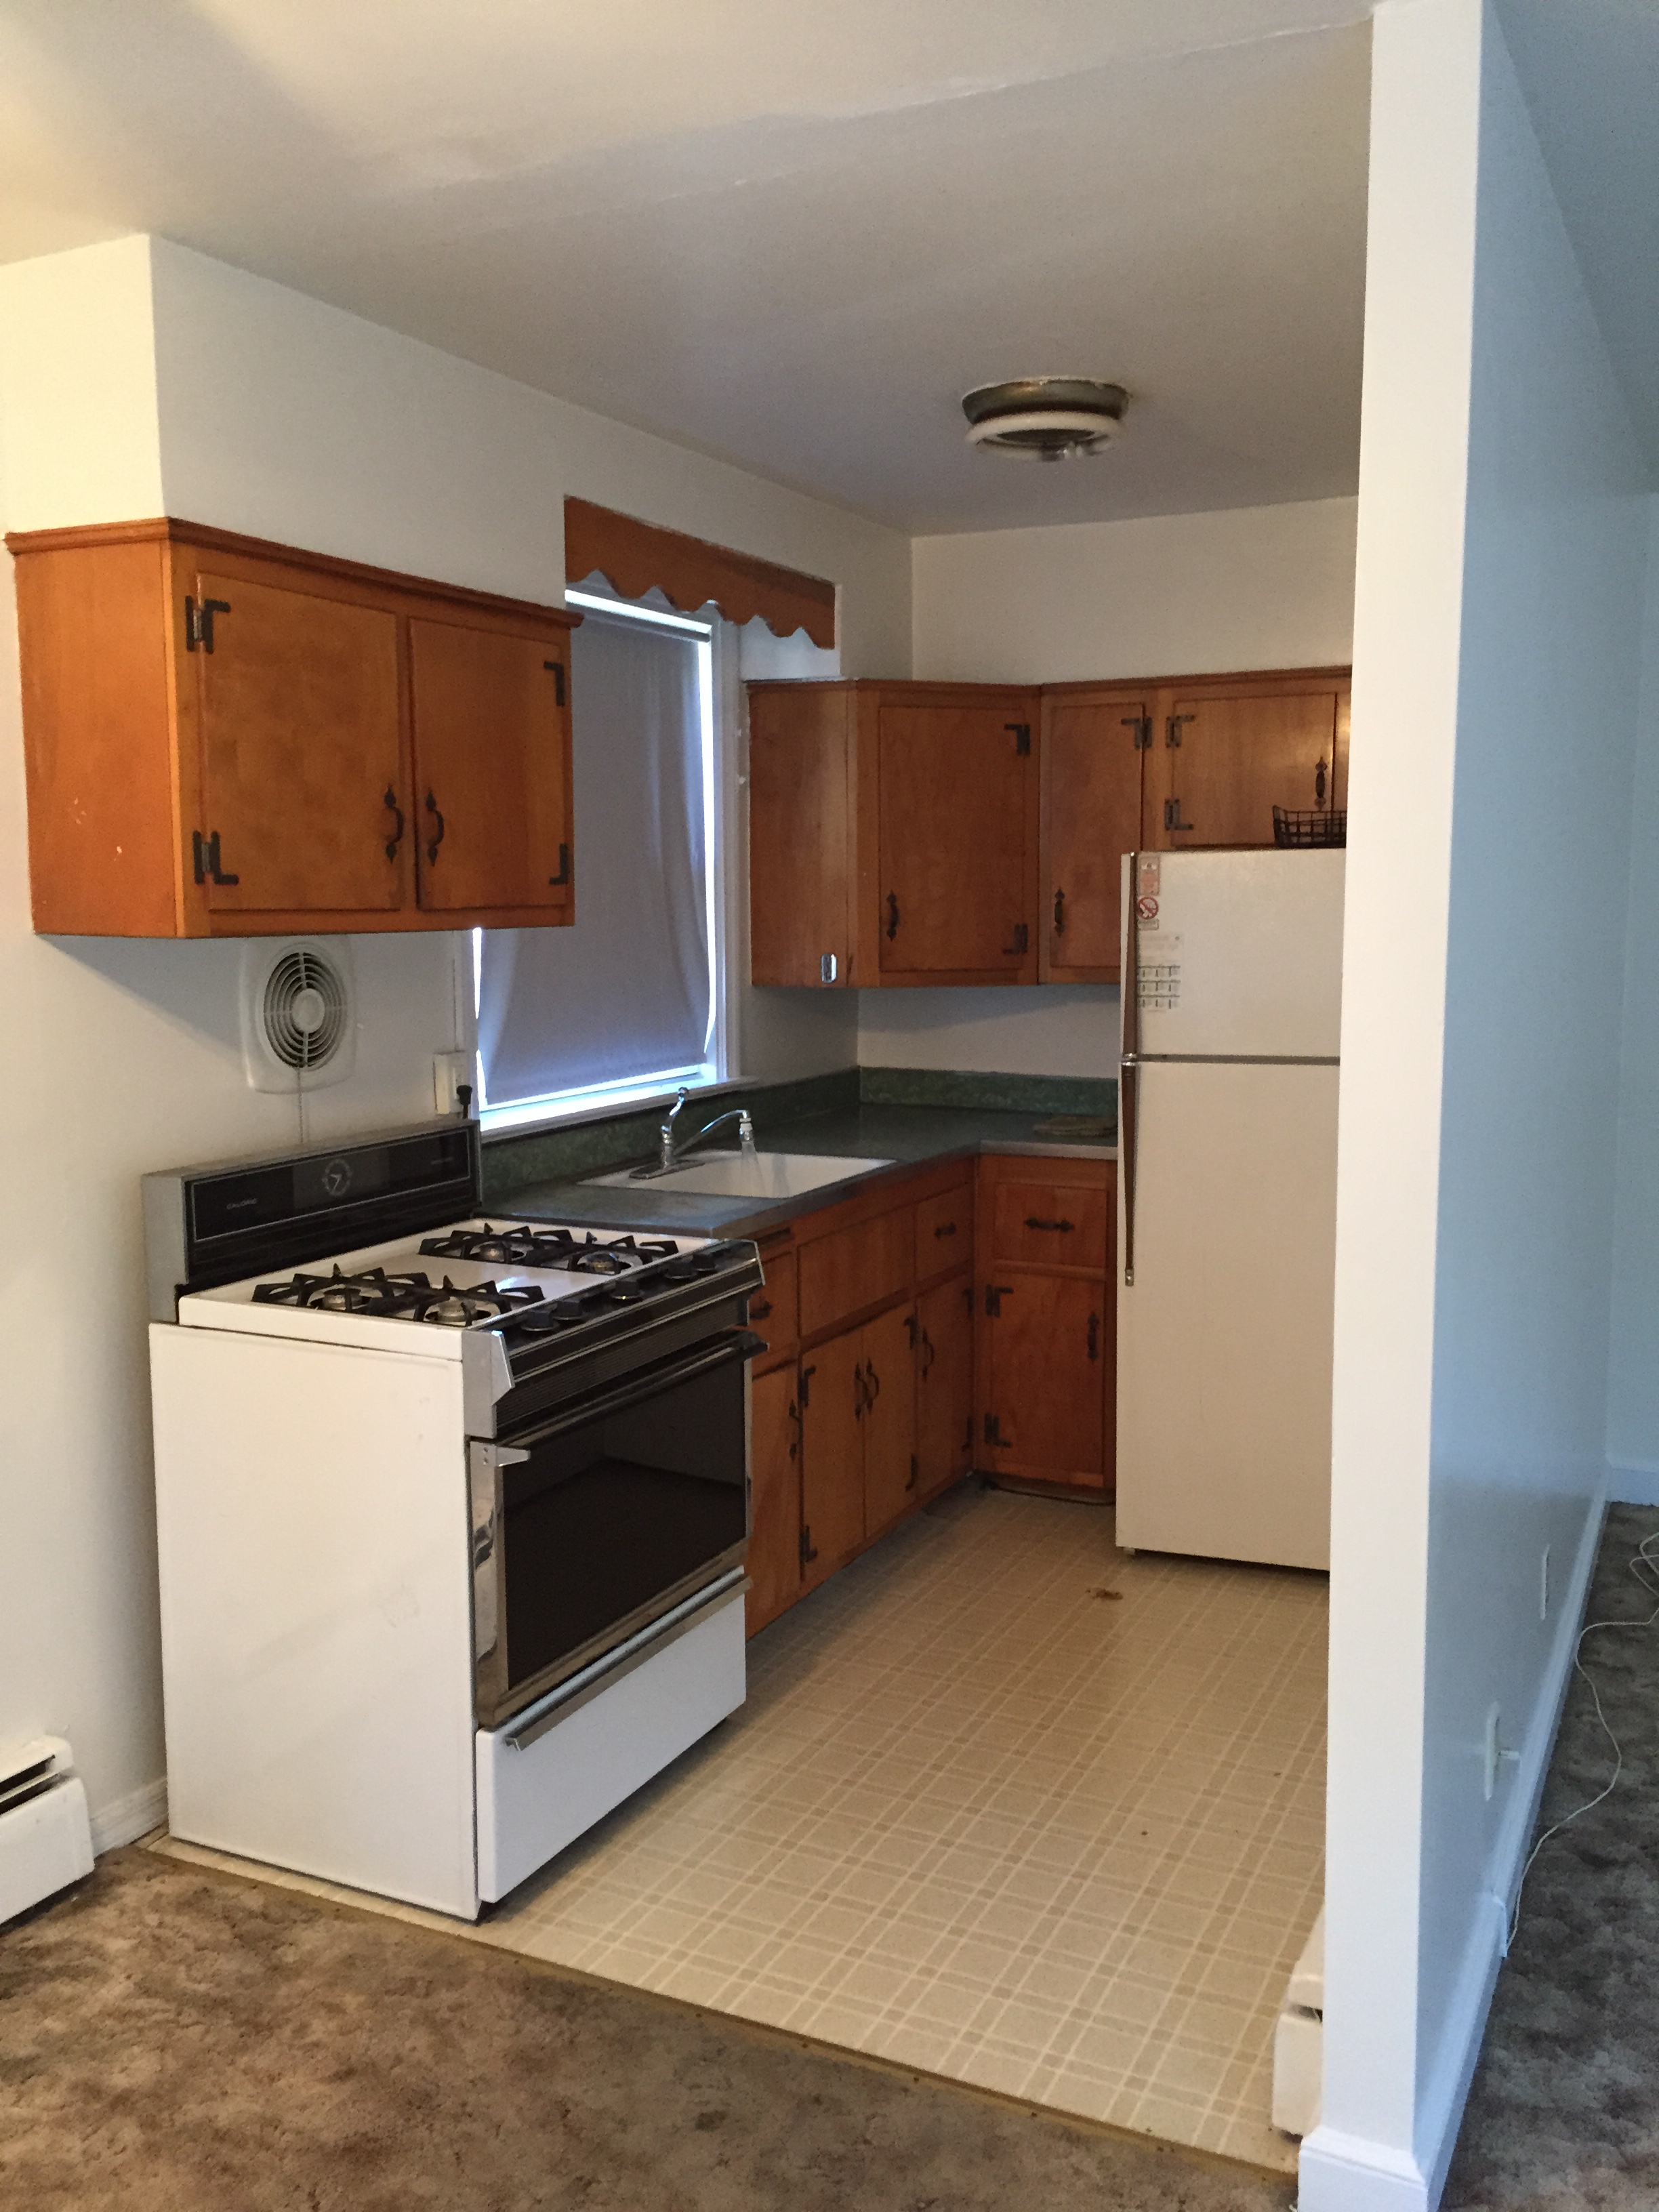 31 E. Lacrosse Kitchen